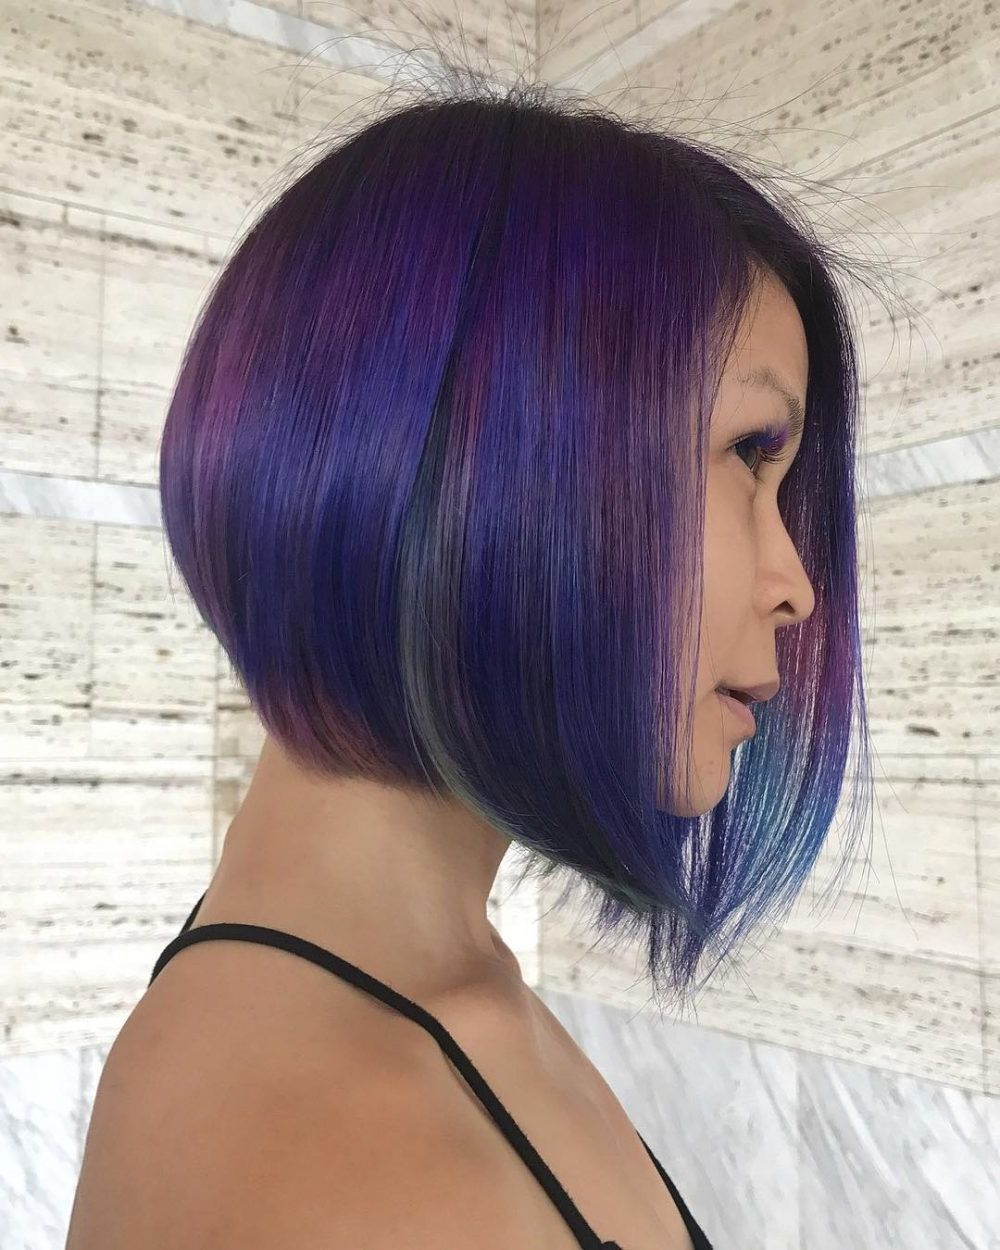 20 Short Ombre Hair Color Ideas to Try in 2019, There are endless short ombre hair color options ...